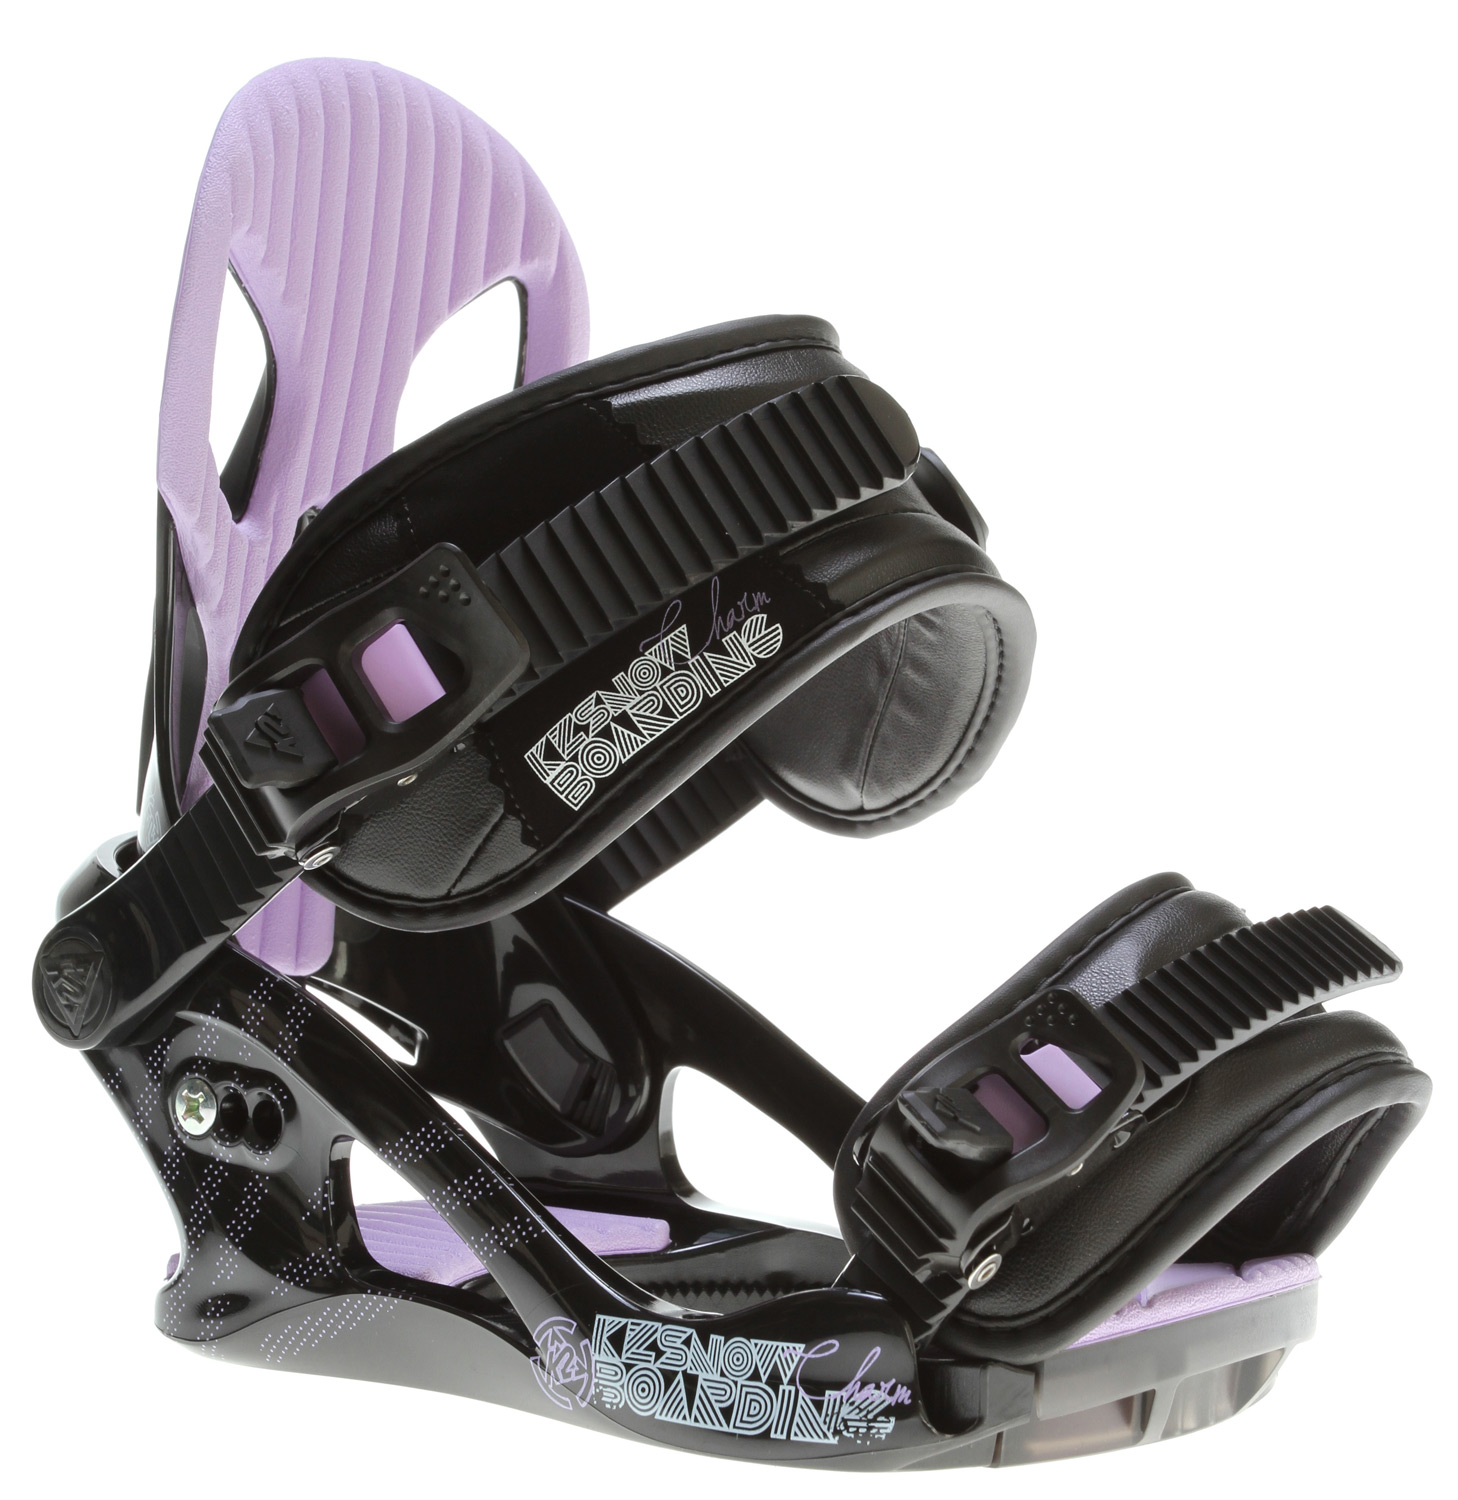 Snowboard K2's good luck binding. The K2 Charm Snowboard Binding is the best binding for the buck a lady can get. With the A-Line chassis and a comfy Caddi Ankle strap, the Charm is all the luck a girl needs.* CHASSIS: A-Line PC * HIGHBACK: Flair Frame * ANKLE STRAP: Women's Caddi * STRAP FEATURES: Cam-Lock Centering * TOE STRAP: Tool-Less universal * RATCHET: Speed * DISC: Multi-Compatible * FOOTBED: Formed EVA Shockpads, Tool-Less Adjust Power Ramp - $71.95